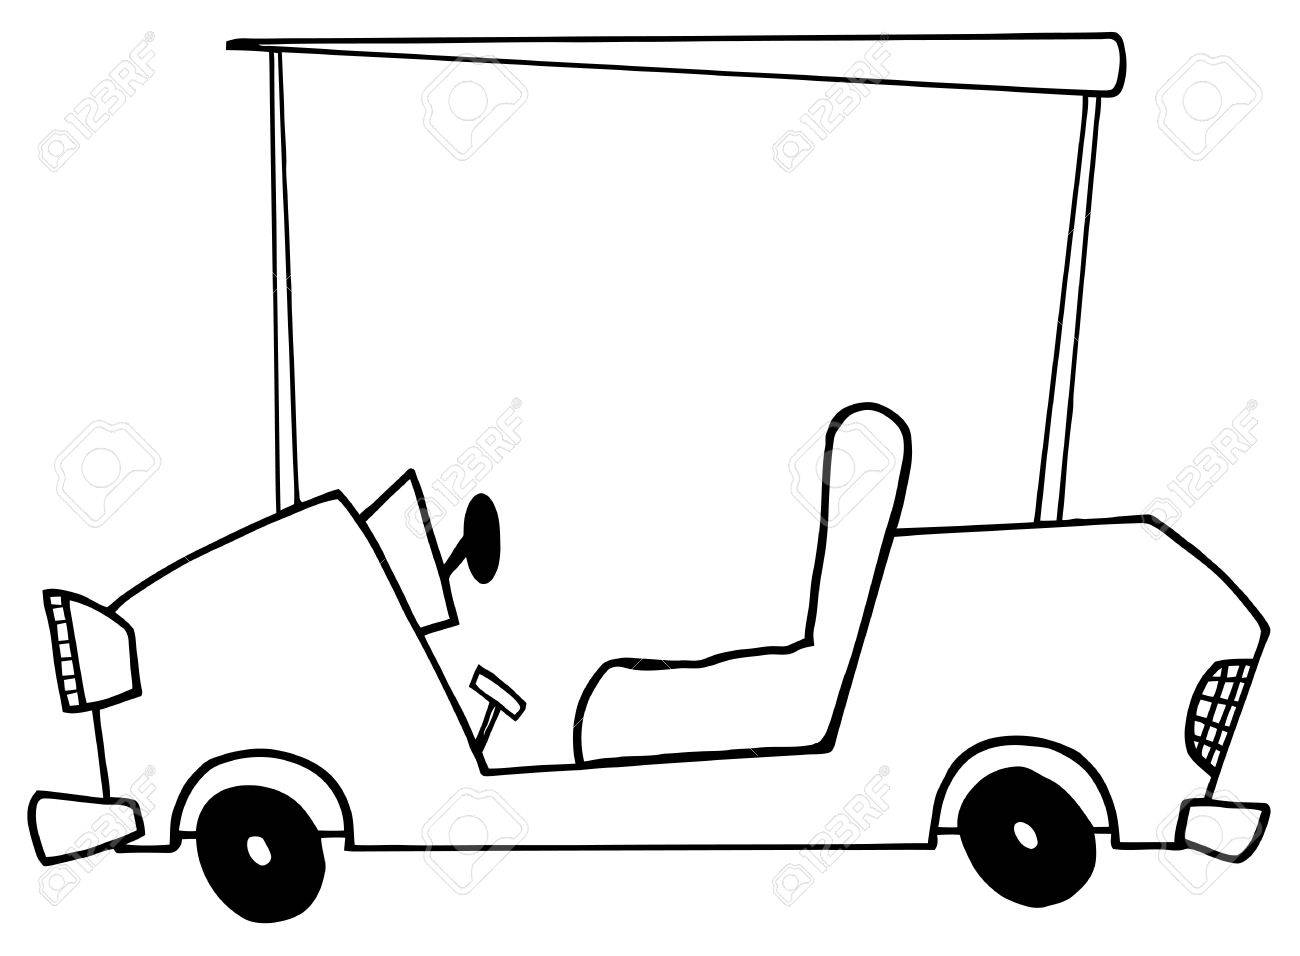 1300x956 Outlined Golf Cart Royalty Free Cliparts, Vectors, And Stock